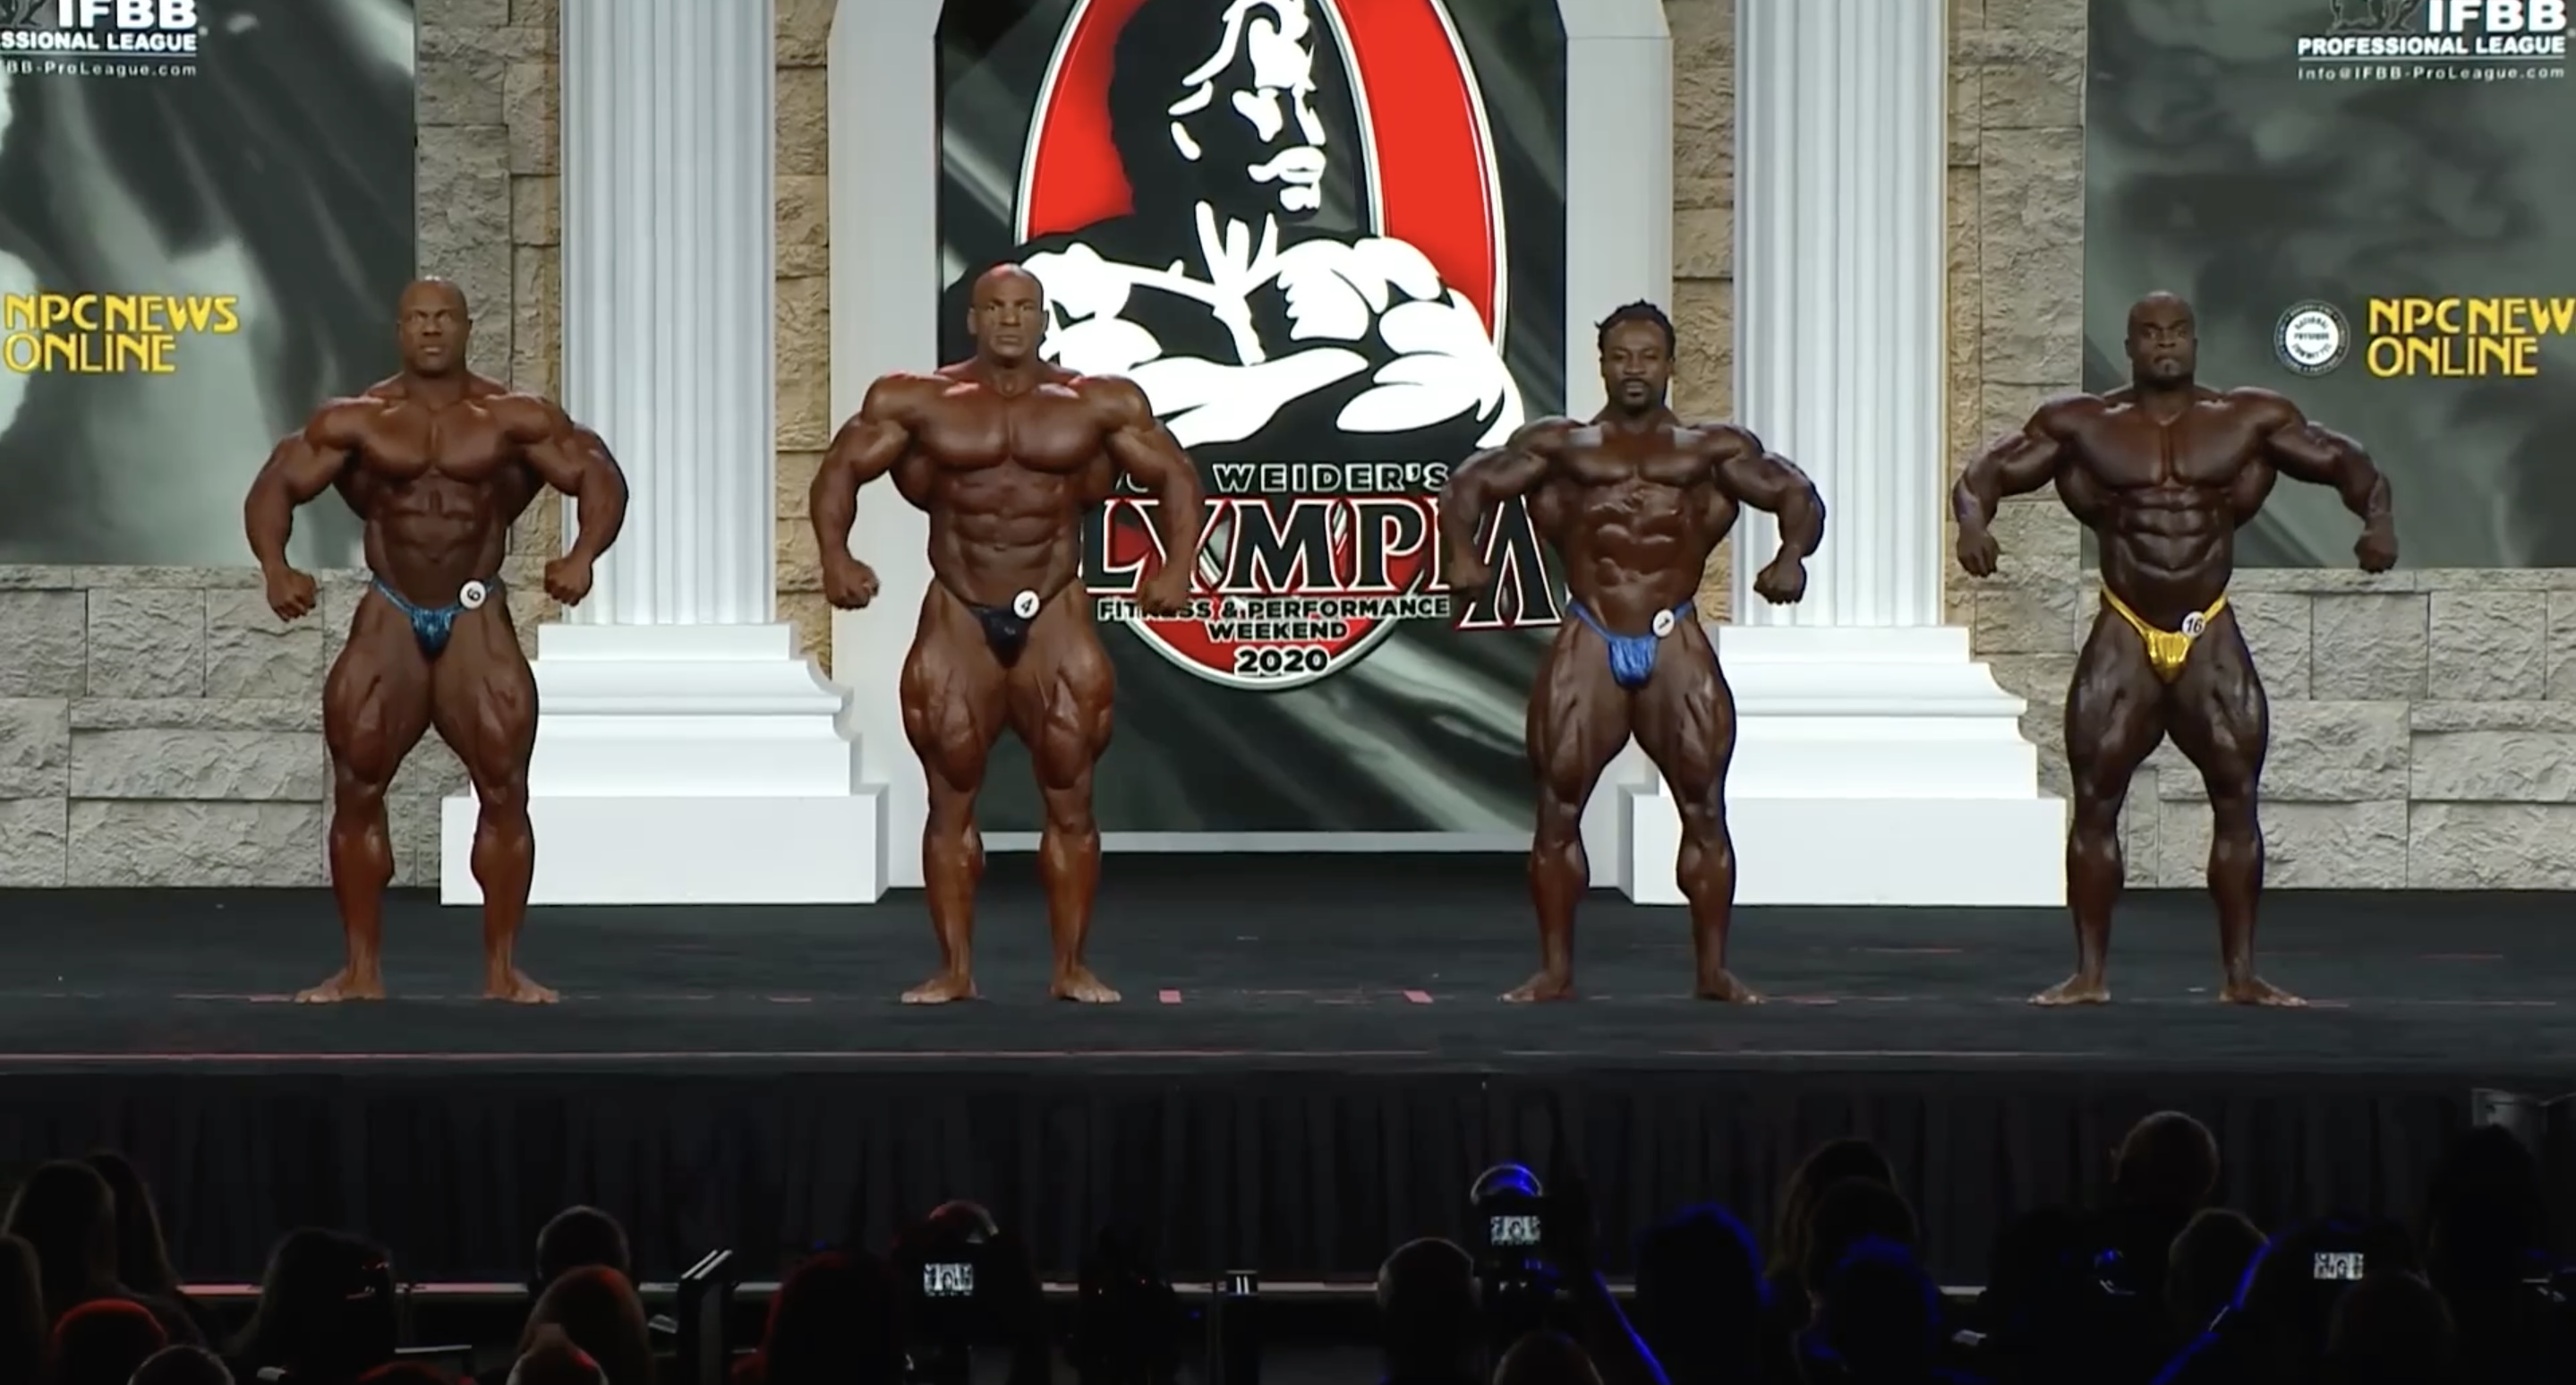 Mr. Olympia 2020 4th Callout